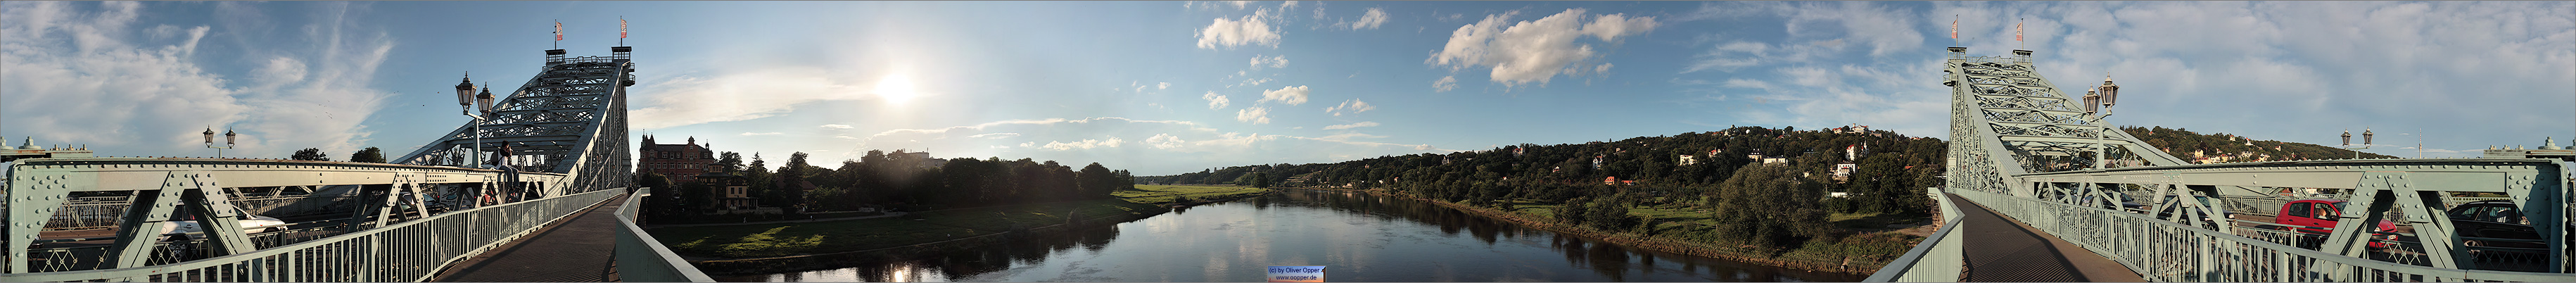 Panorama Dresden - Blaue Wunder - p36 - (c) by Oliver Opper